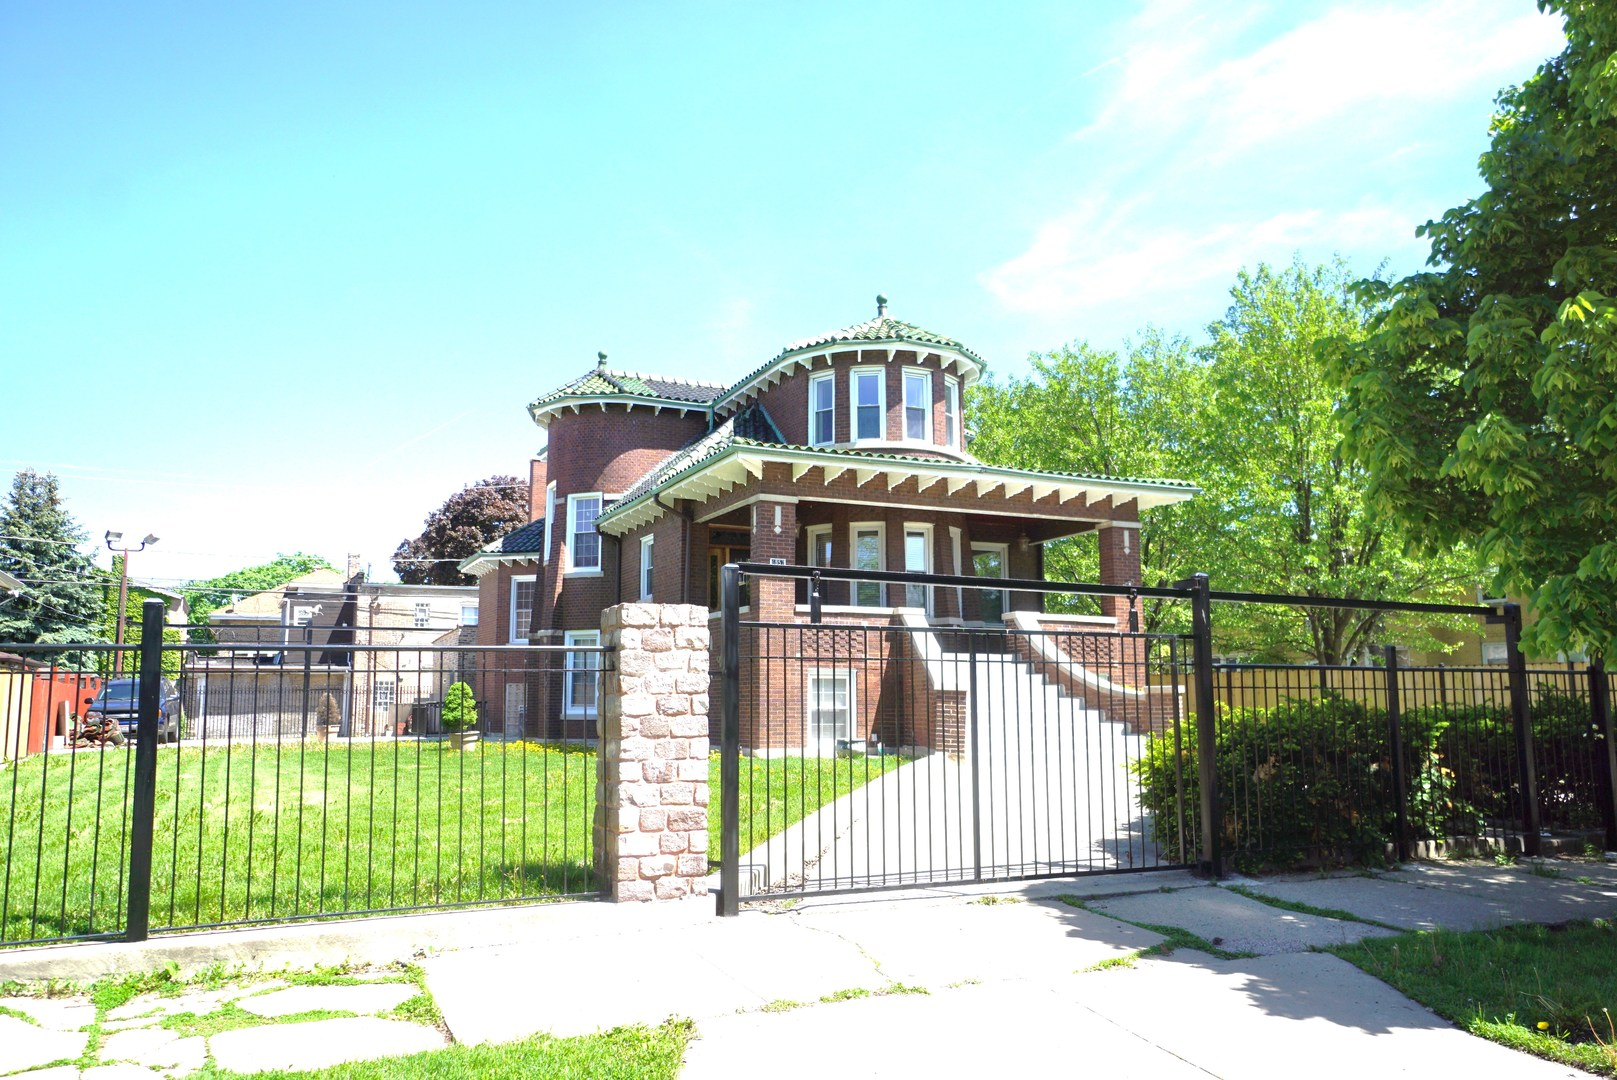 6557 SOUTH TROY STREET, CHICAGO, IL 60629